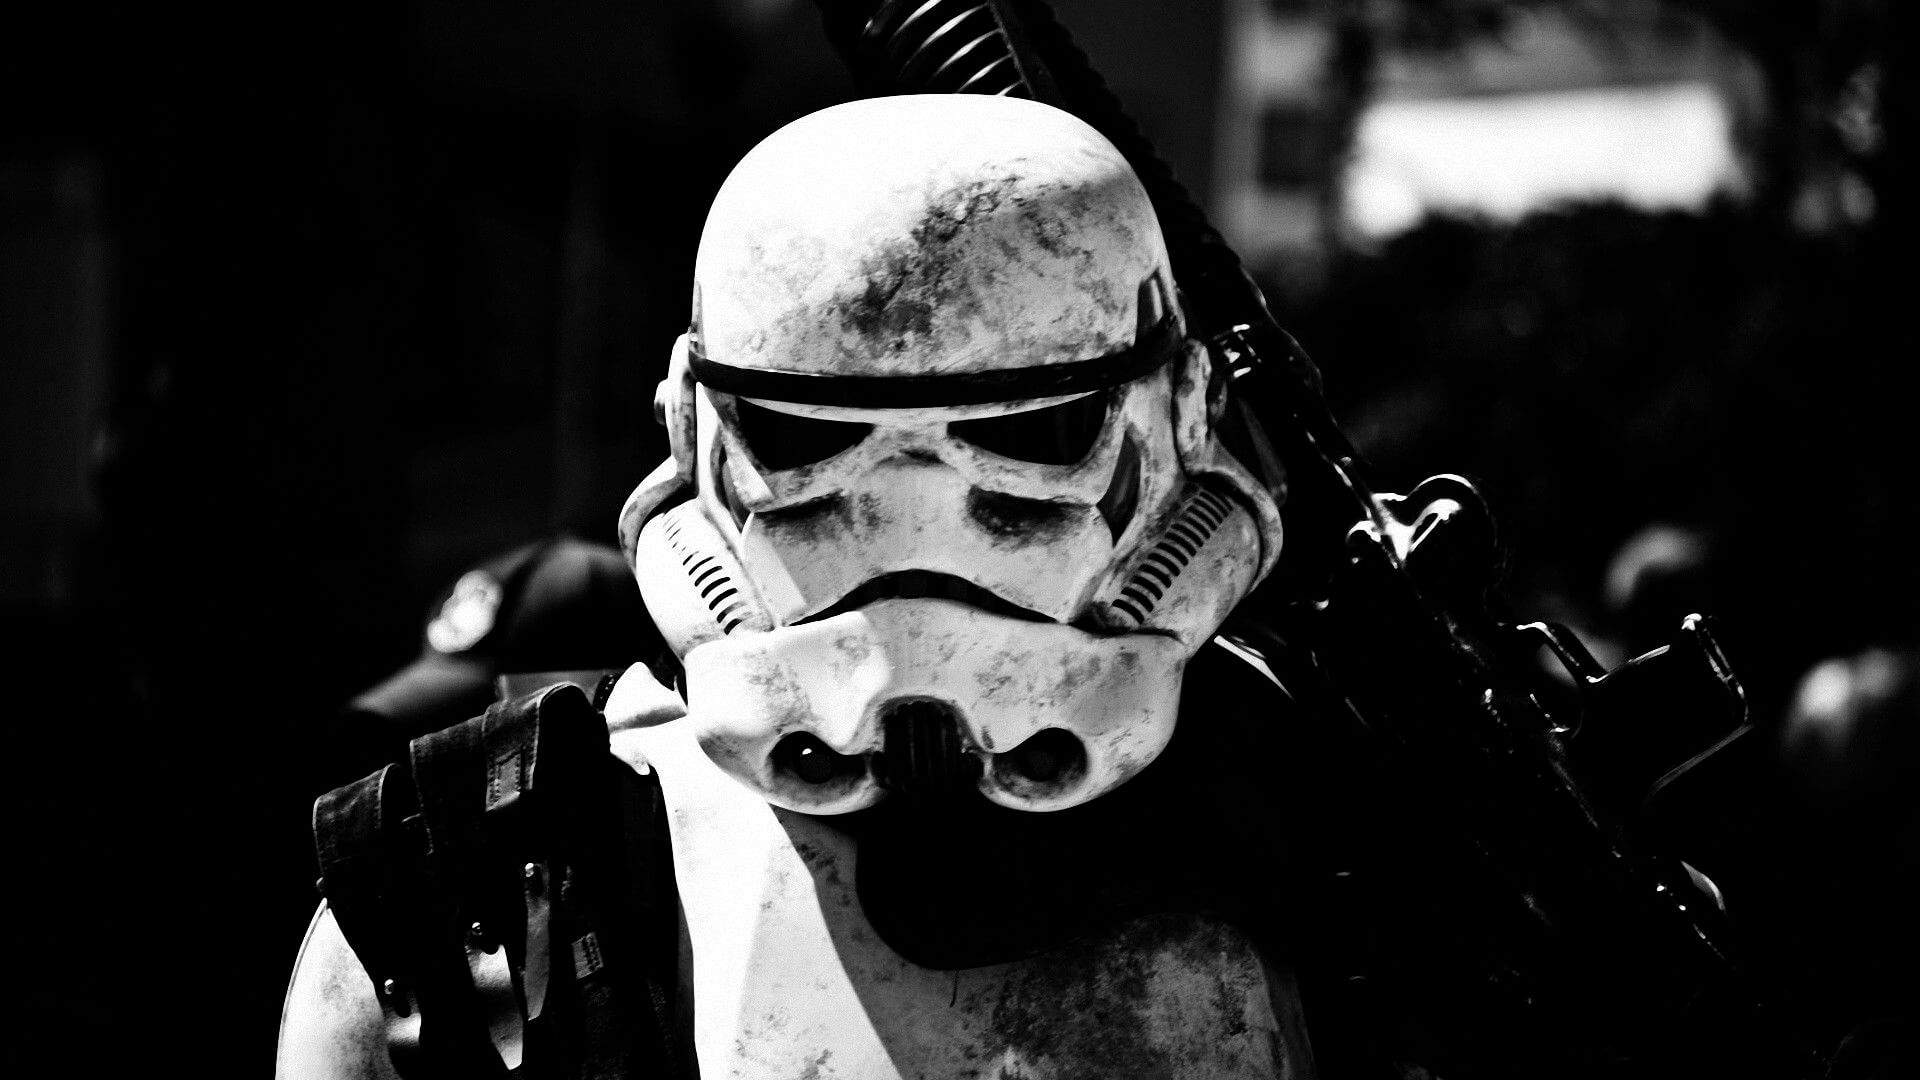 If Stormtroopers are the Empire's elite, why have we never seen ...